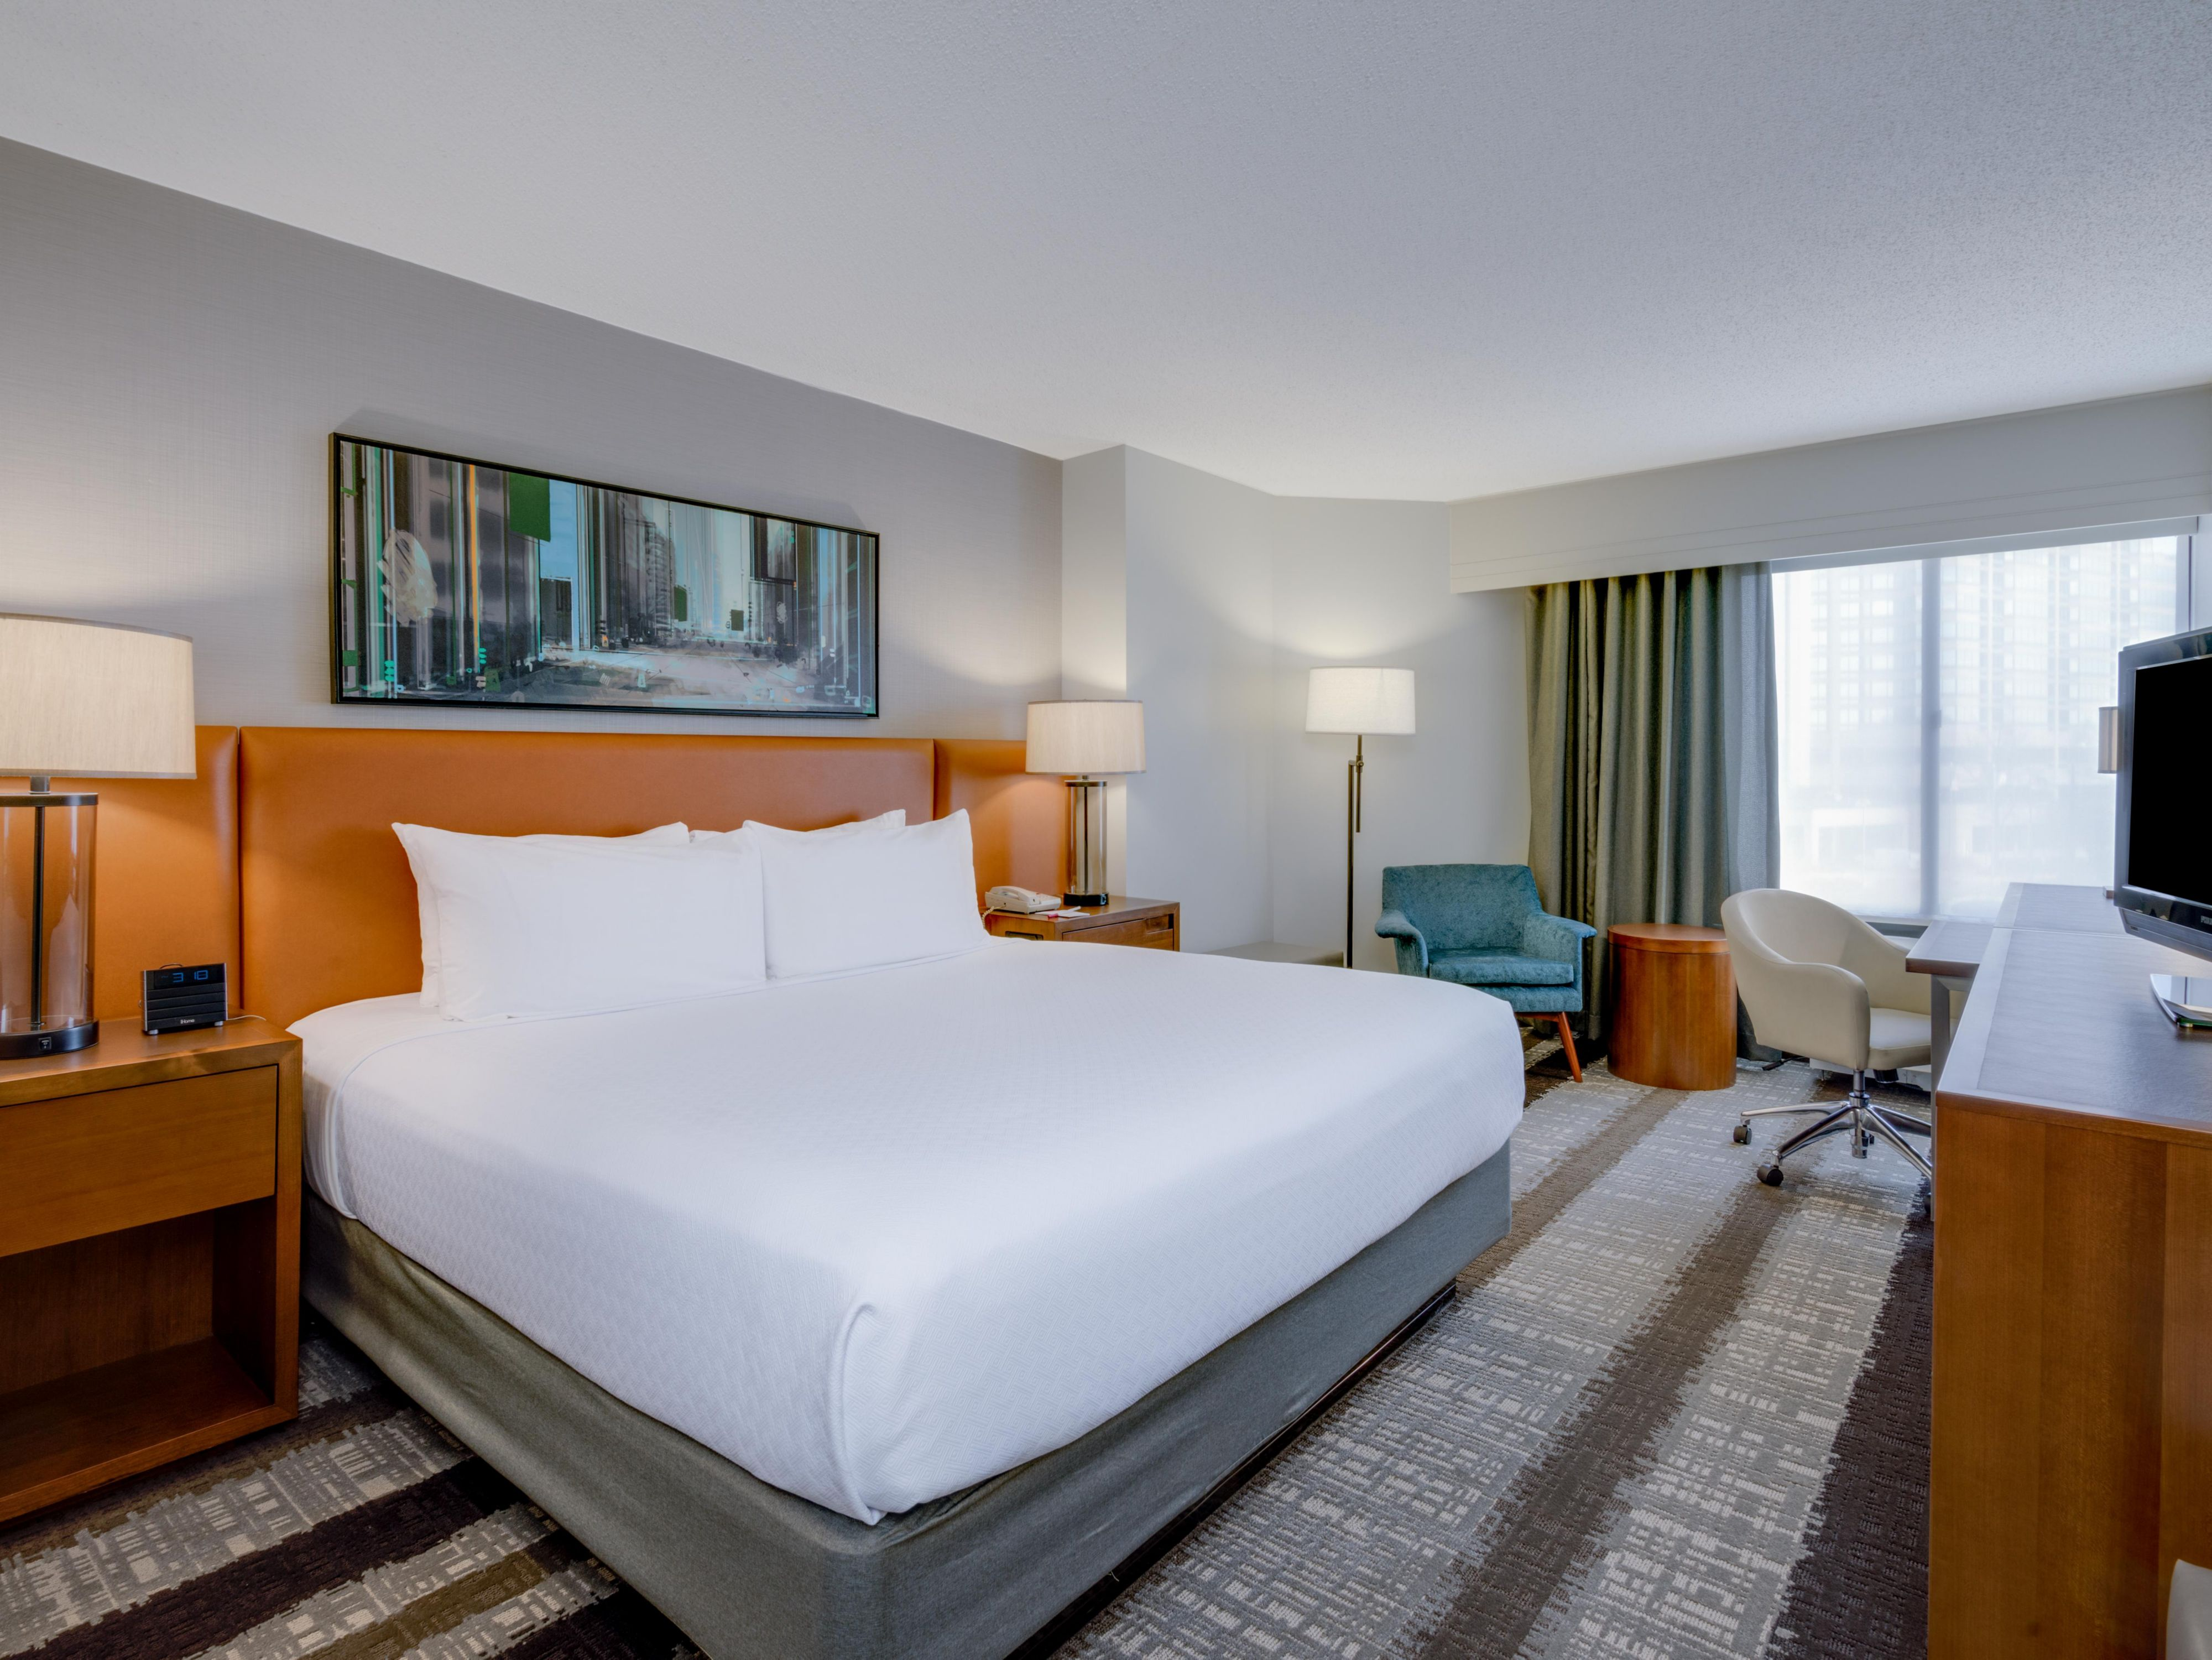 Crowne Plaza Dulles Airport 2200 Centreville Road Herndon Virginia 20170